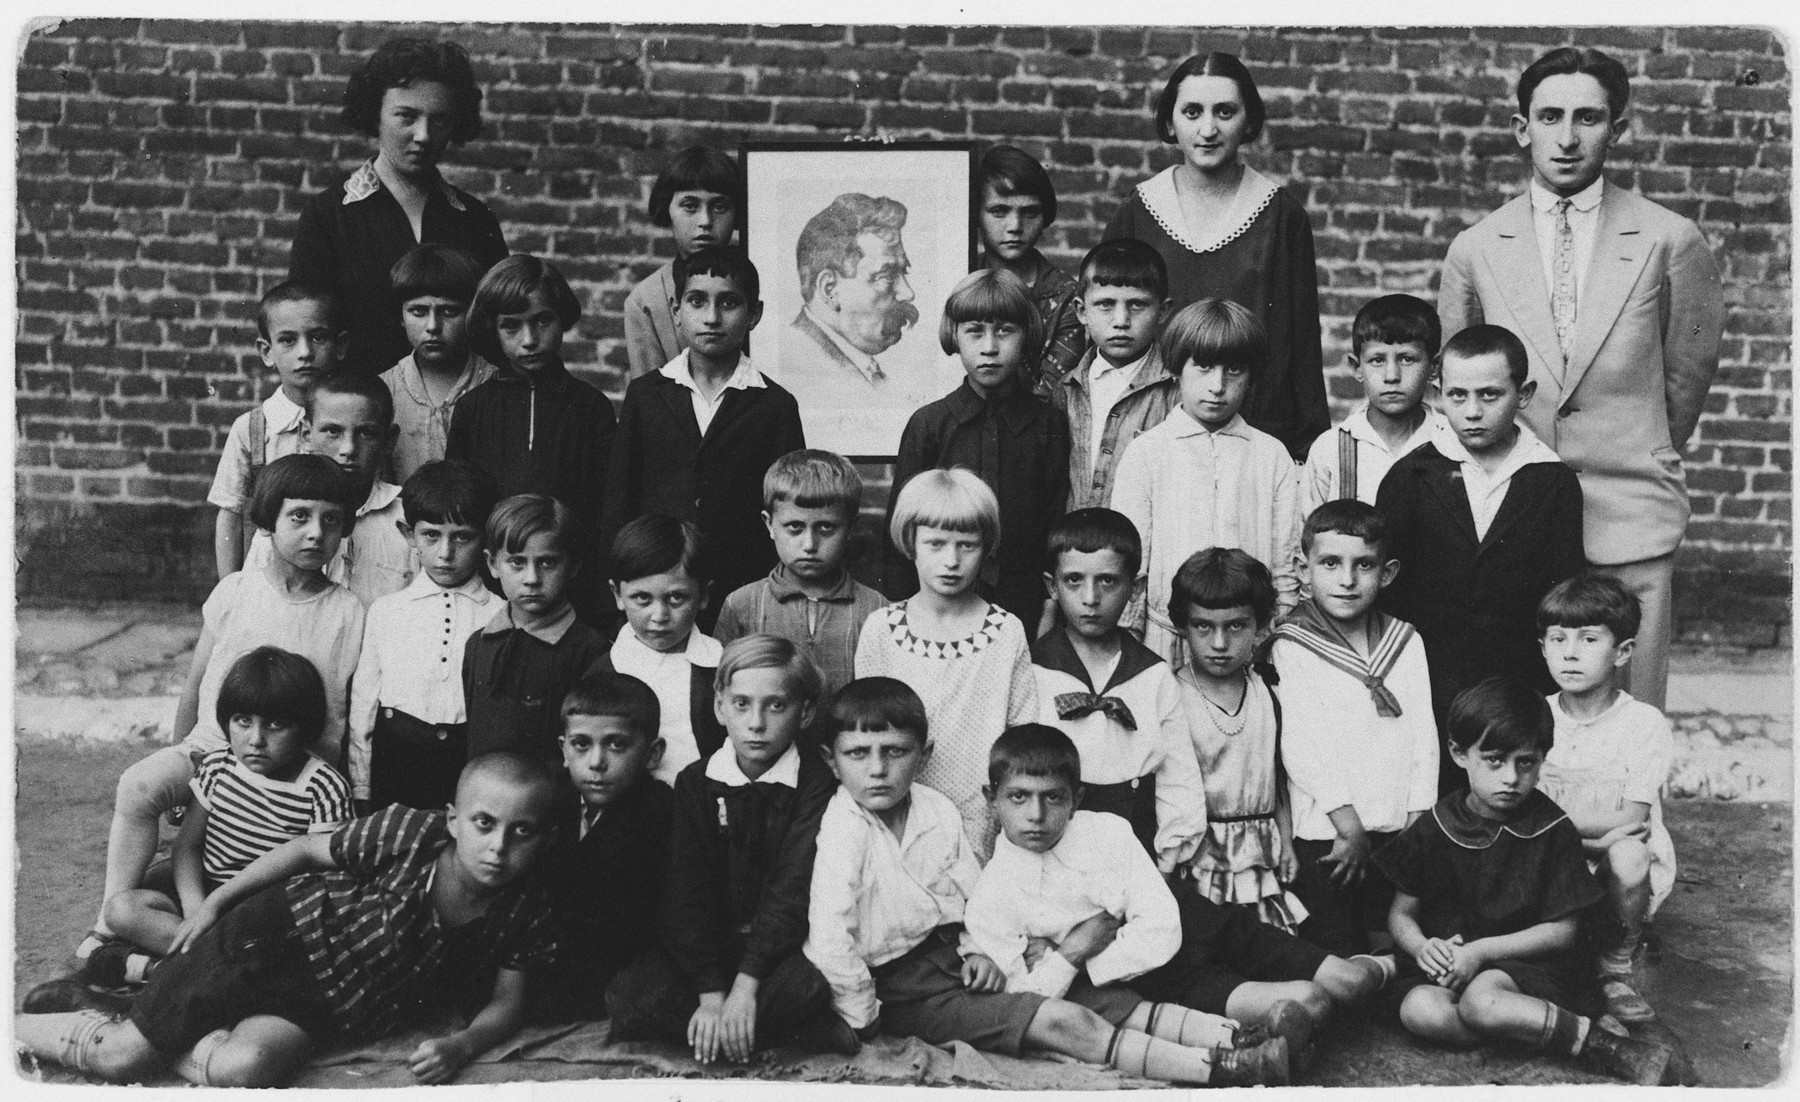 Group portrait of the first-grade class of the Bundist school in Kalisz.  Standing on the left is their teacher Genia Kac.  Standing on the far right is the school secretary, Heniek Storch.  The portrait is of the Yiddish writer, Y.L. Peretz.